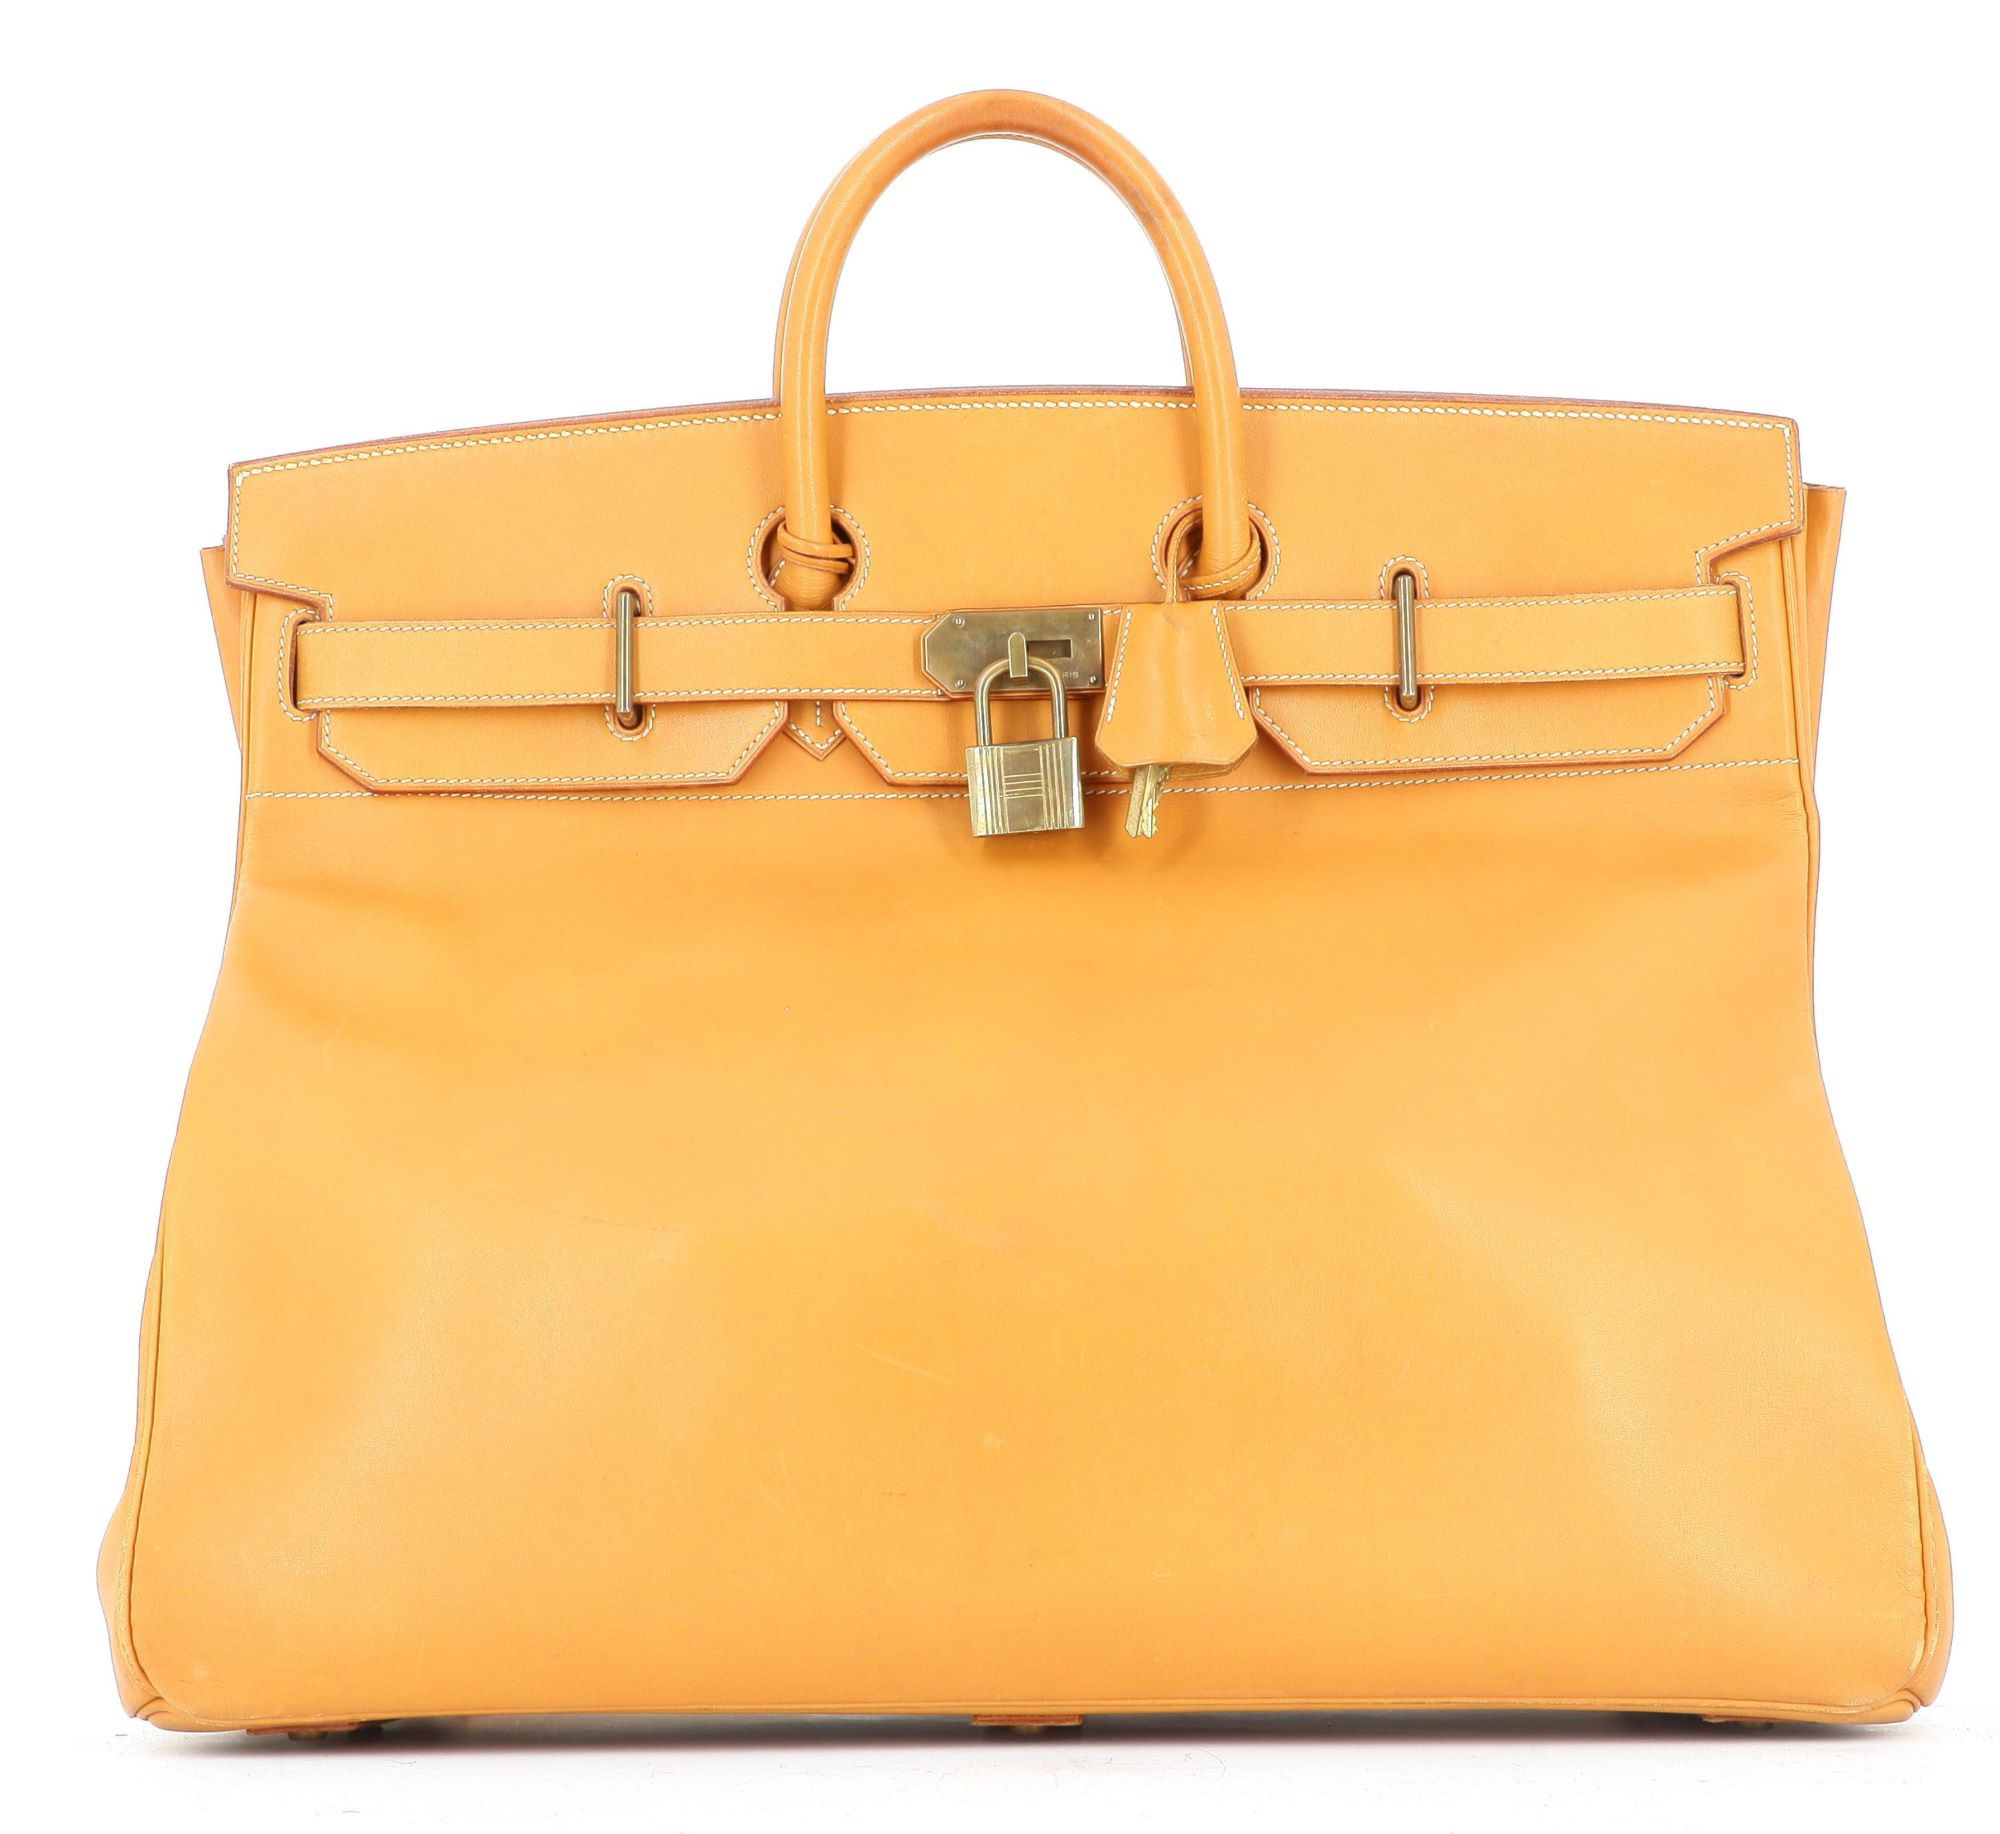 A picture containing accessory, bag, case  Description automatically generated